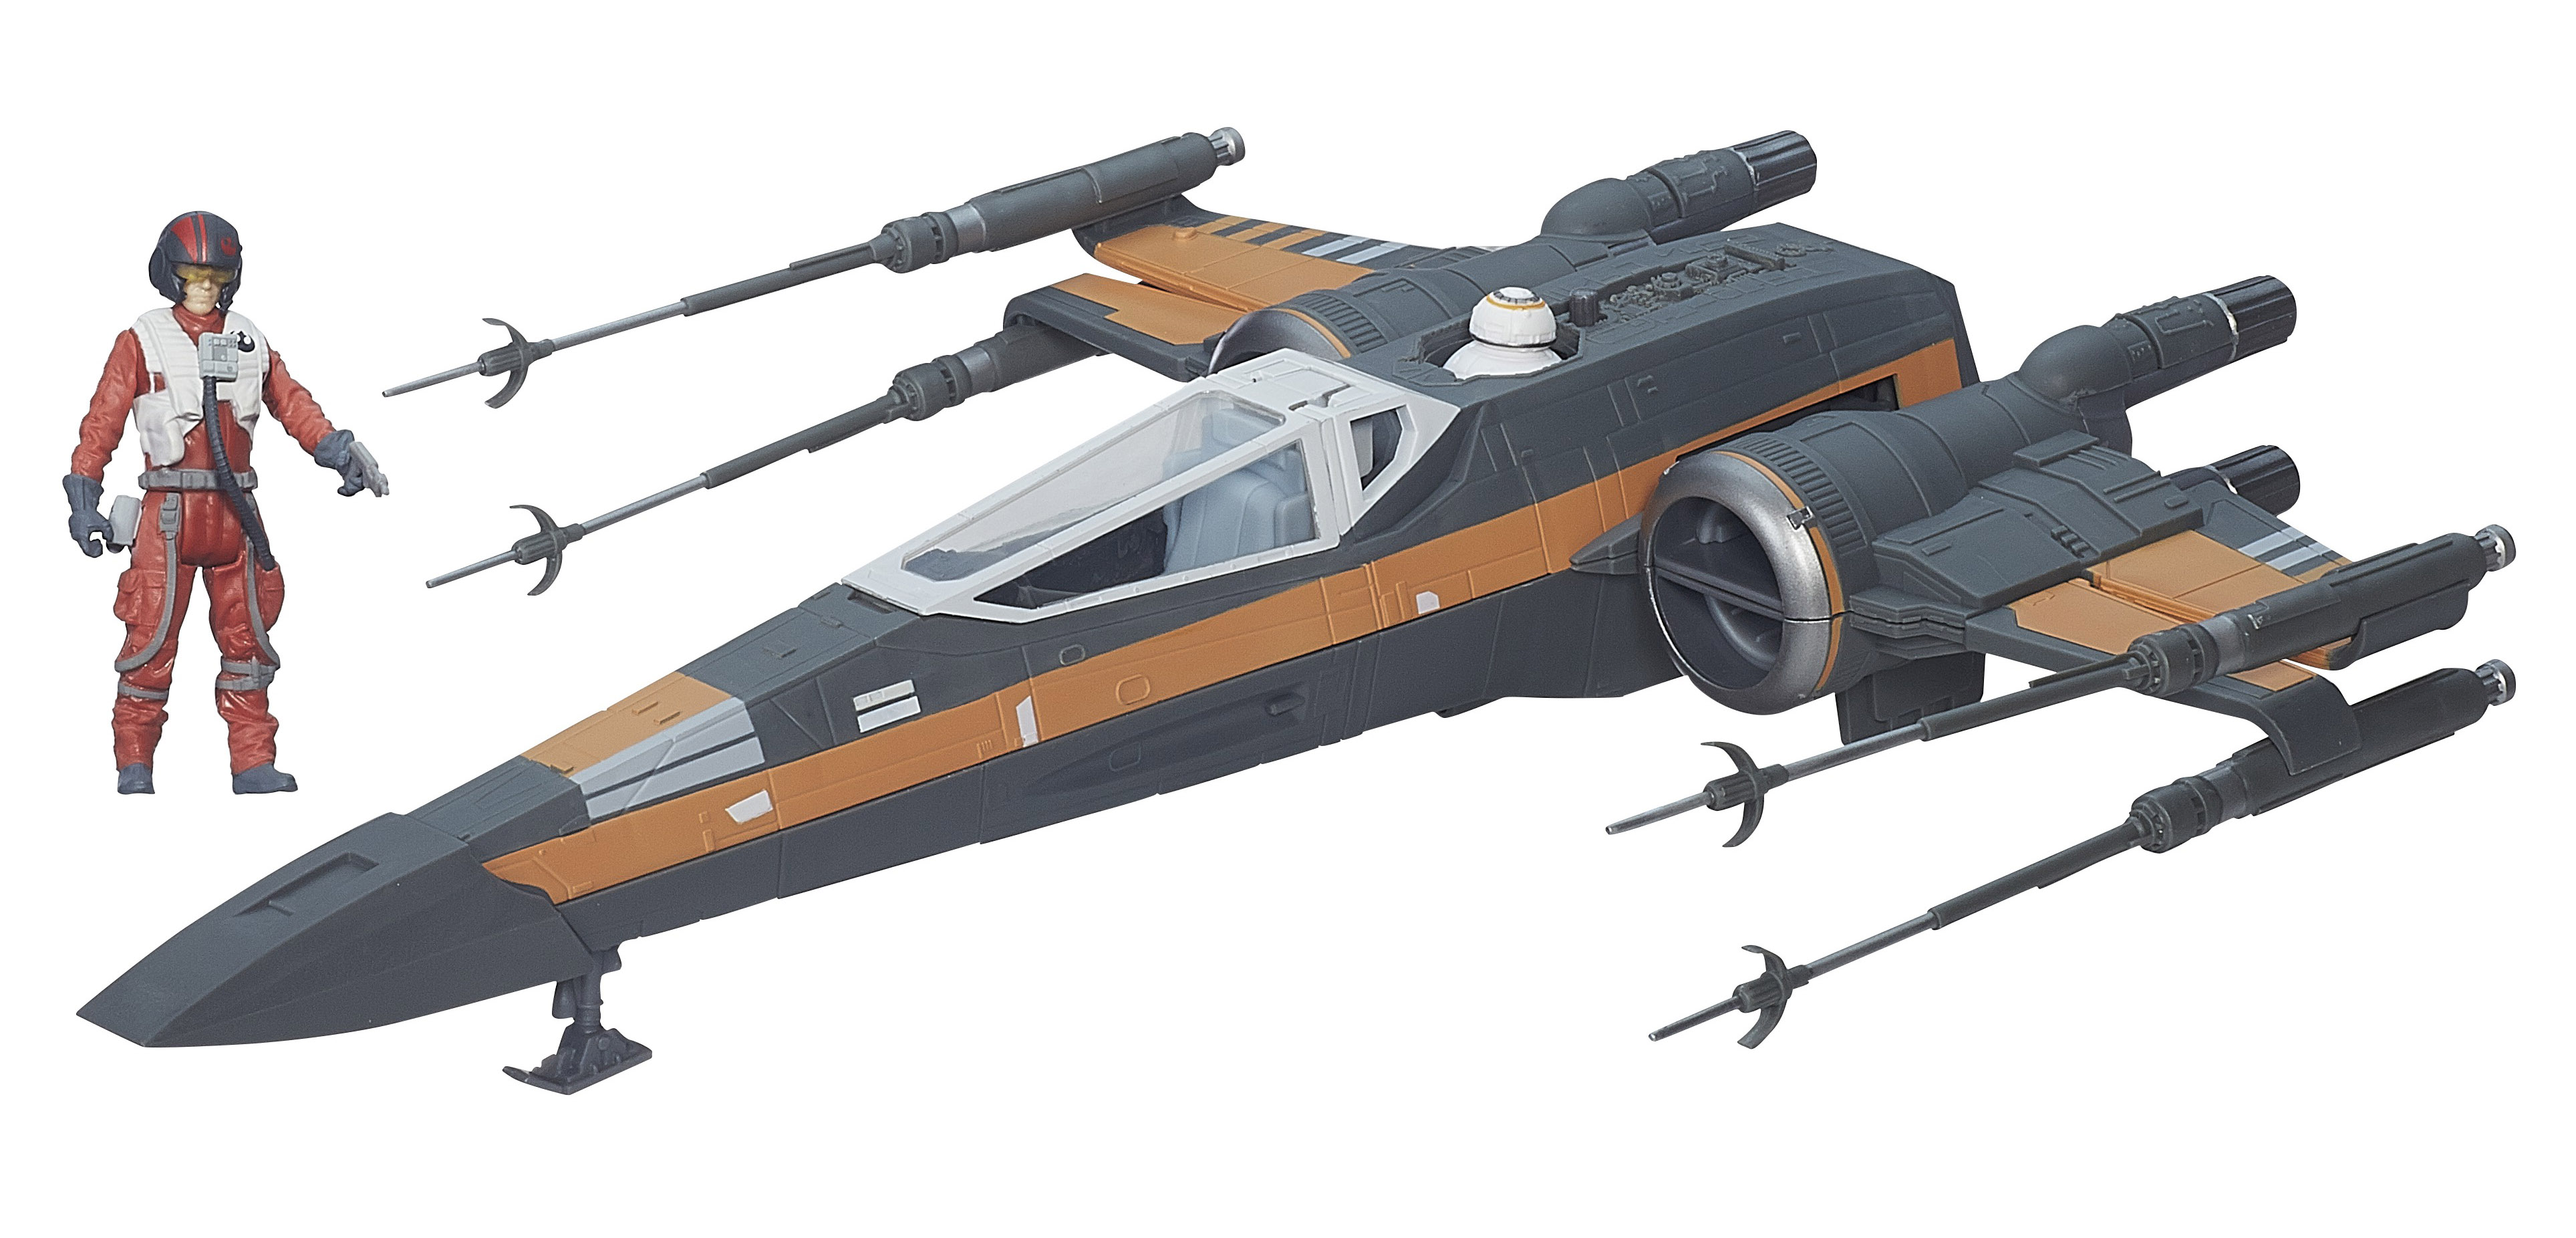 remote control helicopter at walmart with What Star Wars Force Awakens Toys Reveal Film on 112516713 together with Toys Remote Control Car also 7 Of The Best Lego City Sets furthermore Top 5 Lego Creator 3 In 1 Sets For 2014 likewise What Star Wars Force Awakens Toys Reveal Film.